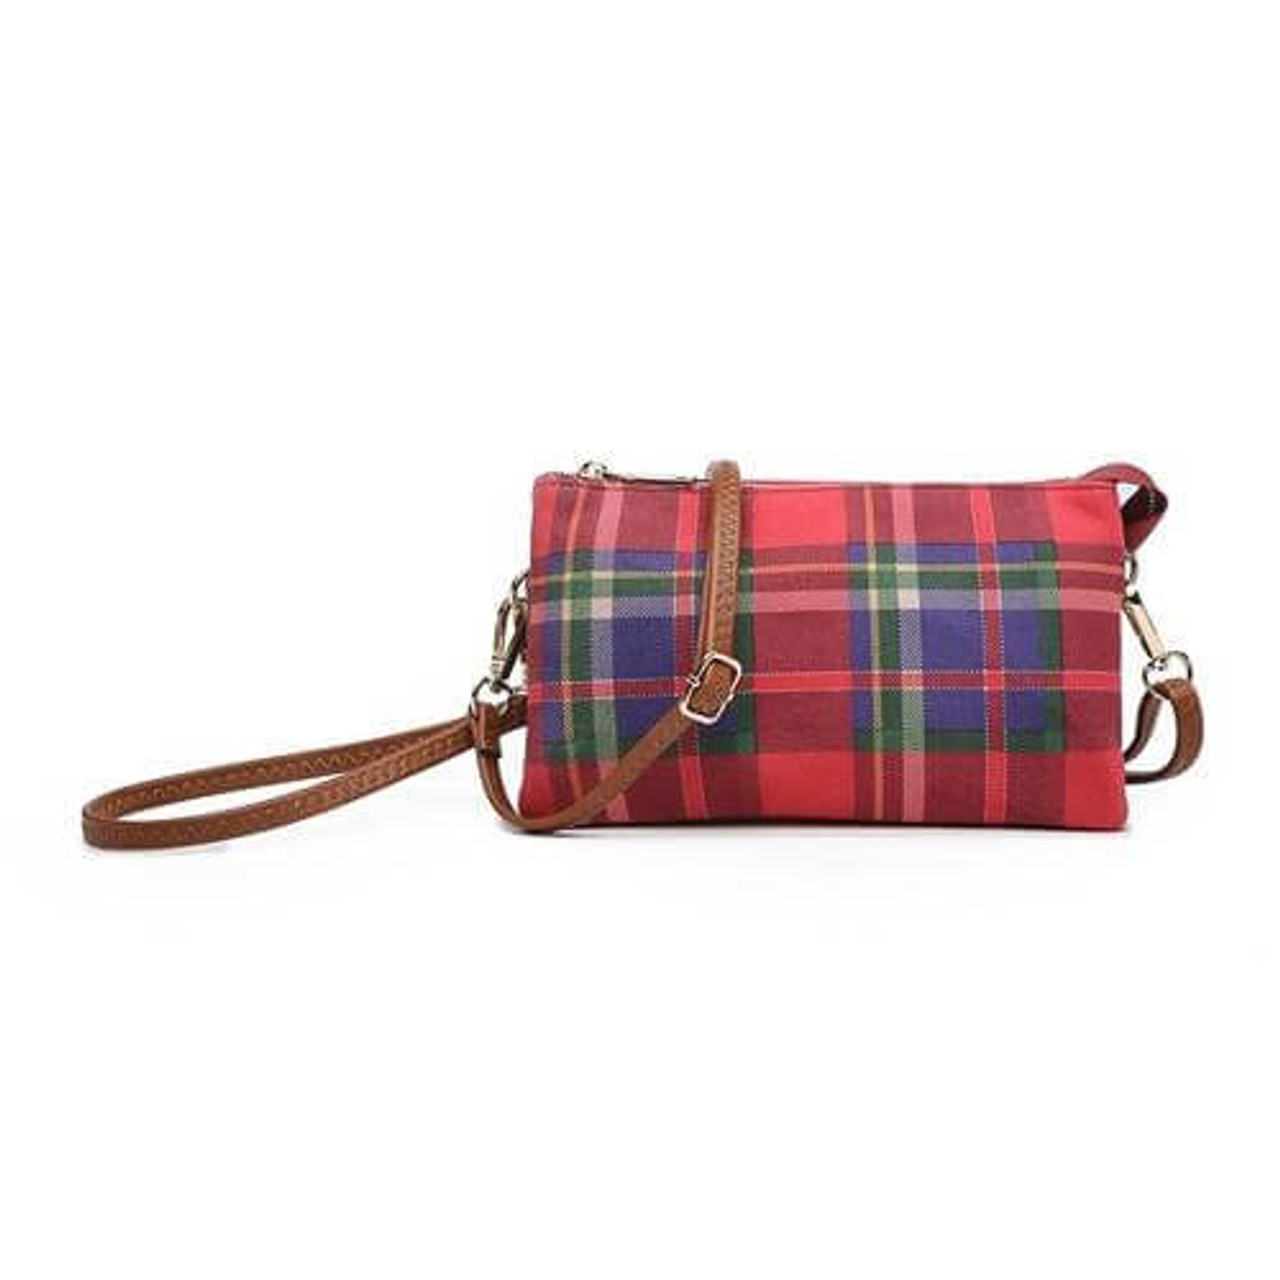 Riley Burgundy blue plaid Wristlet and adjustable crossbody strap included. Three separate interior compartments with six credit card slots. Top zipper closure.